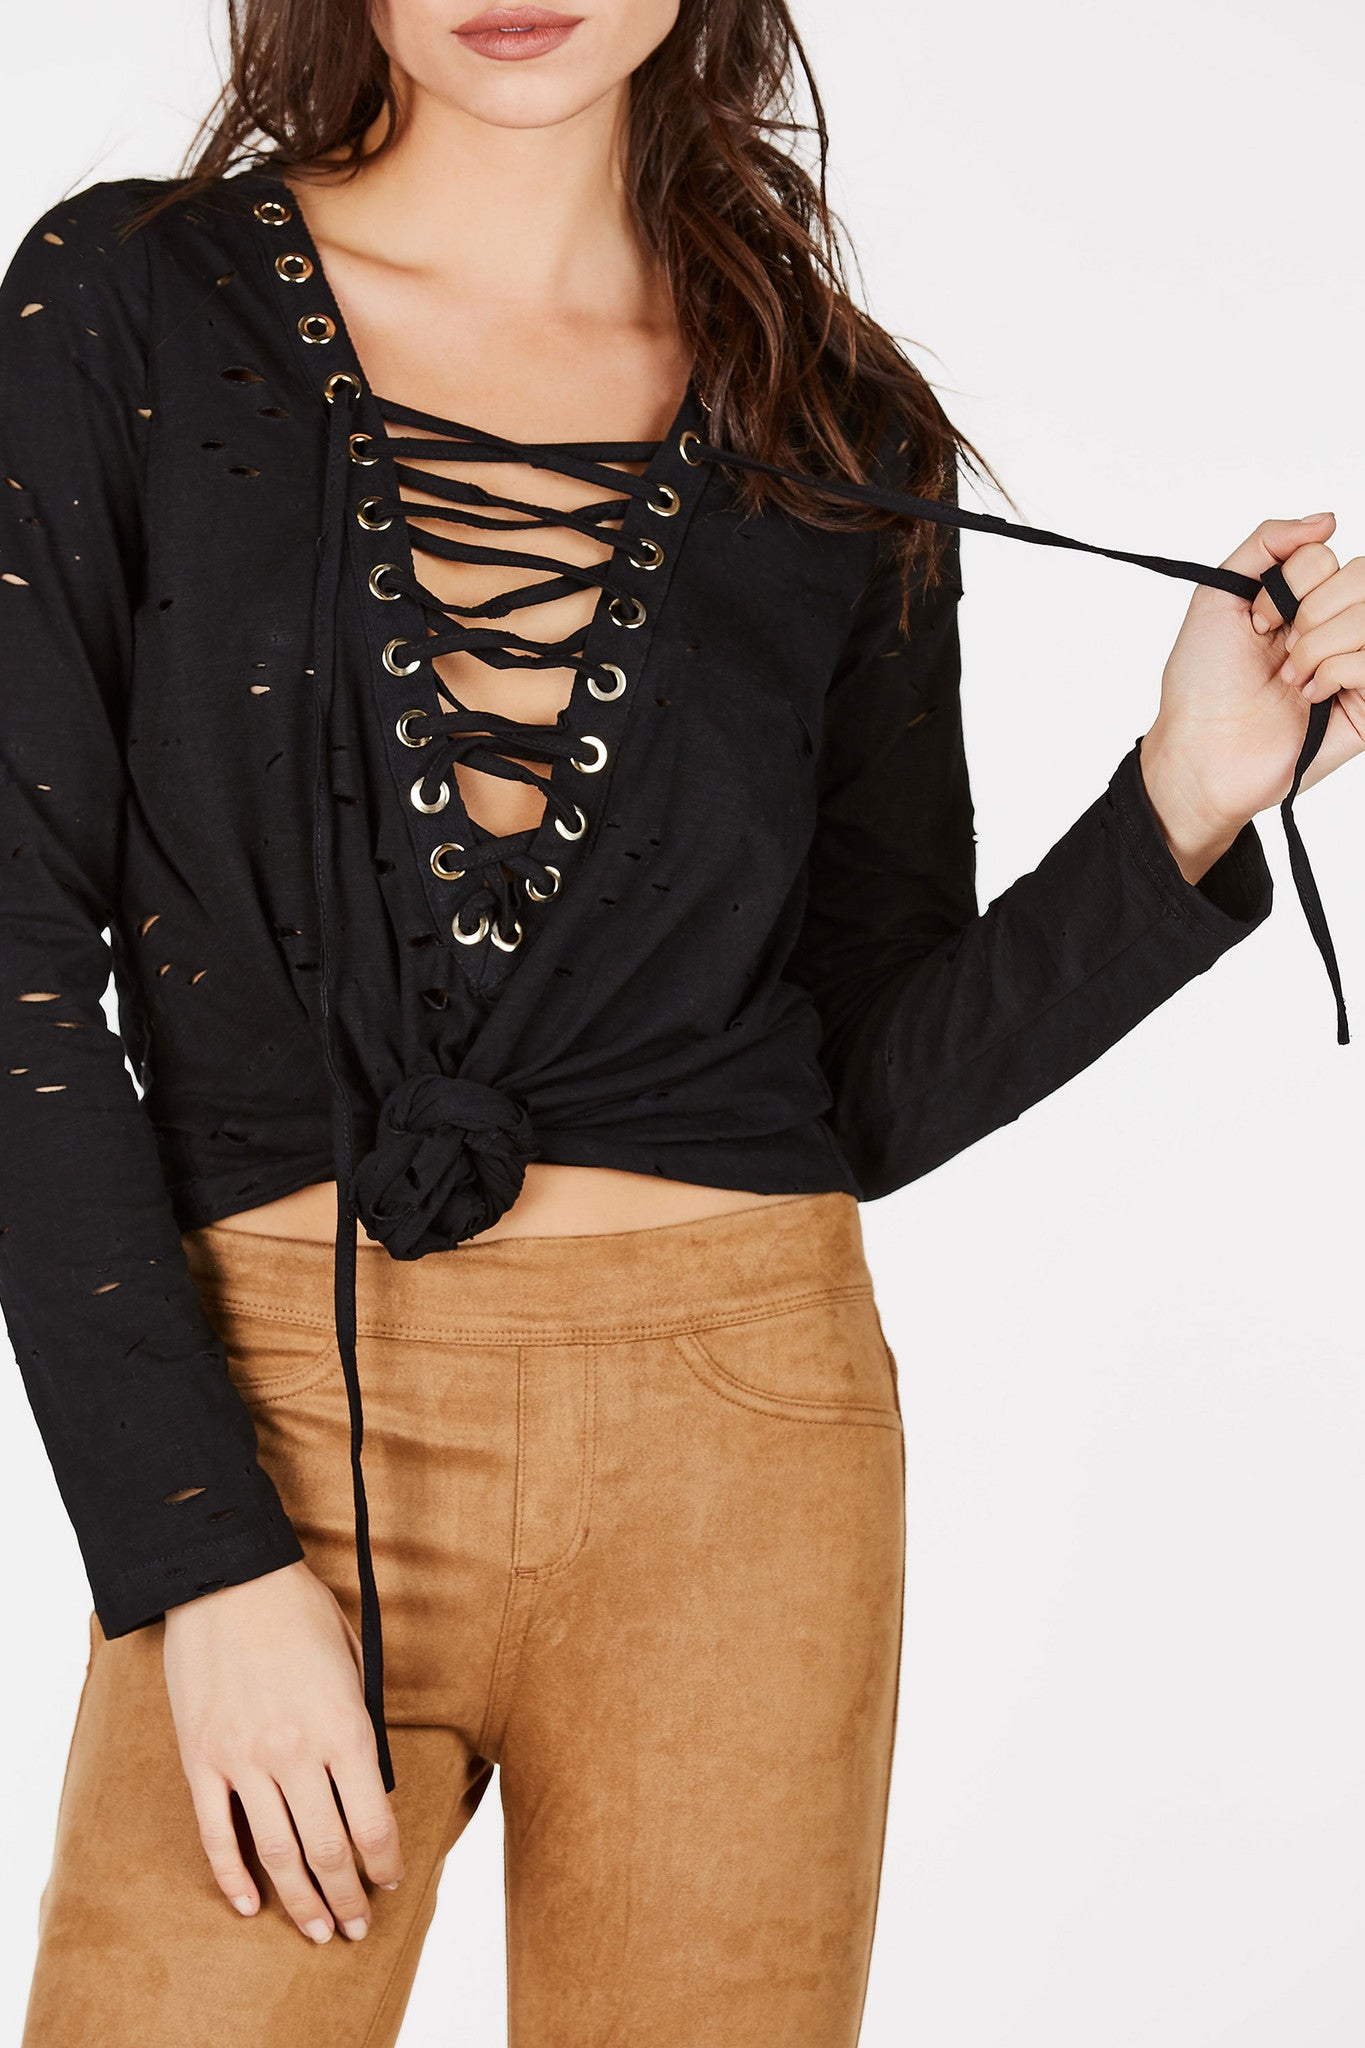 Distressed long sleeve top. Plunging neckline with lace up and kotted front.